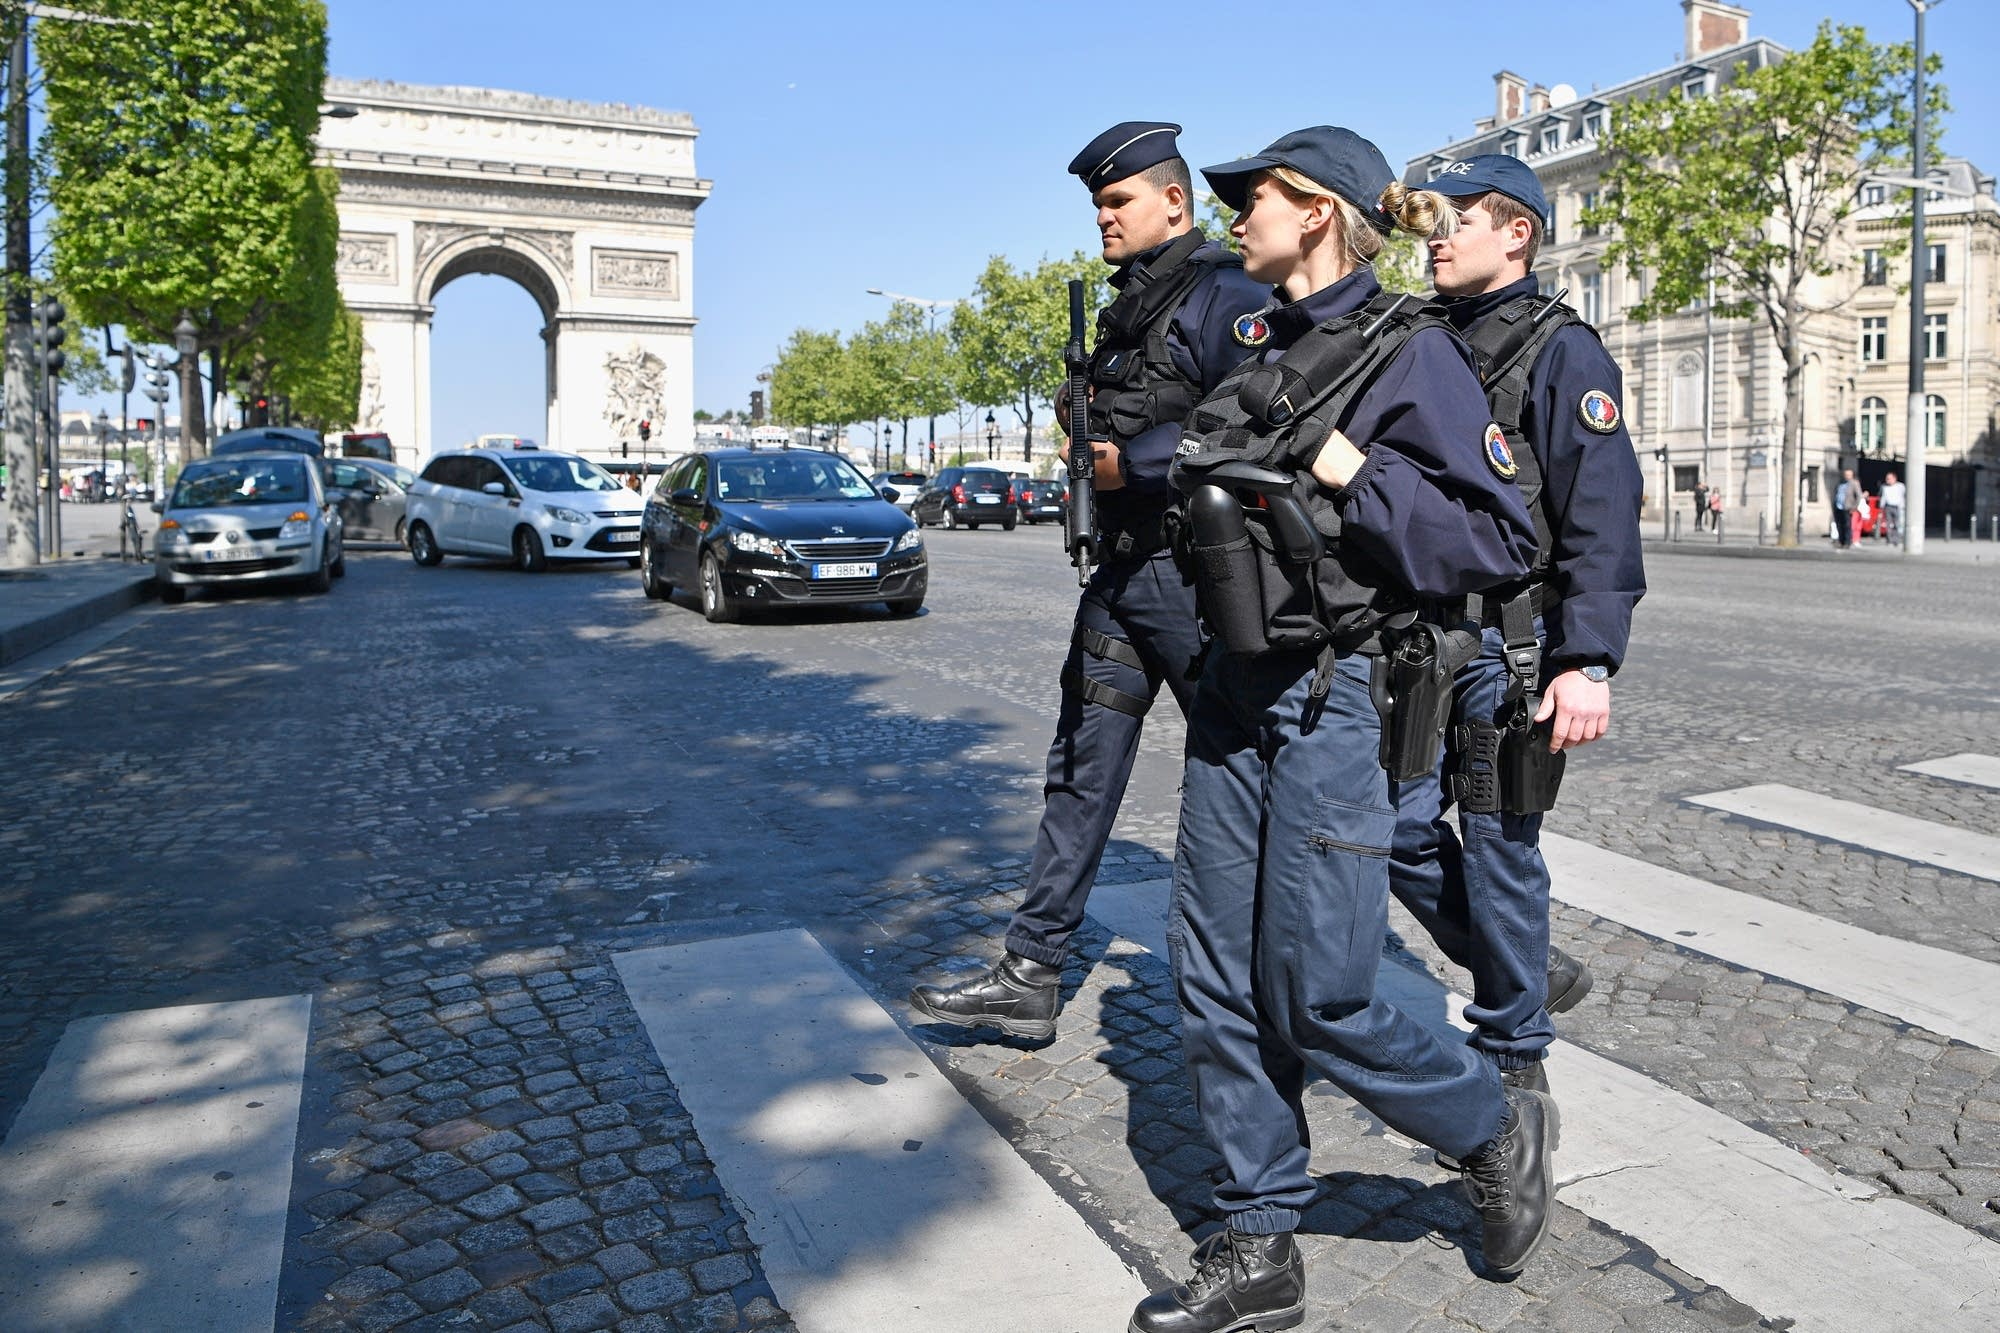 Armed police patrol the Champs-Elysees in Paris